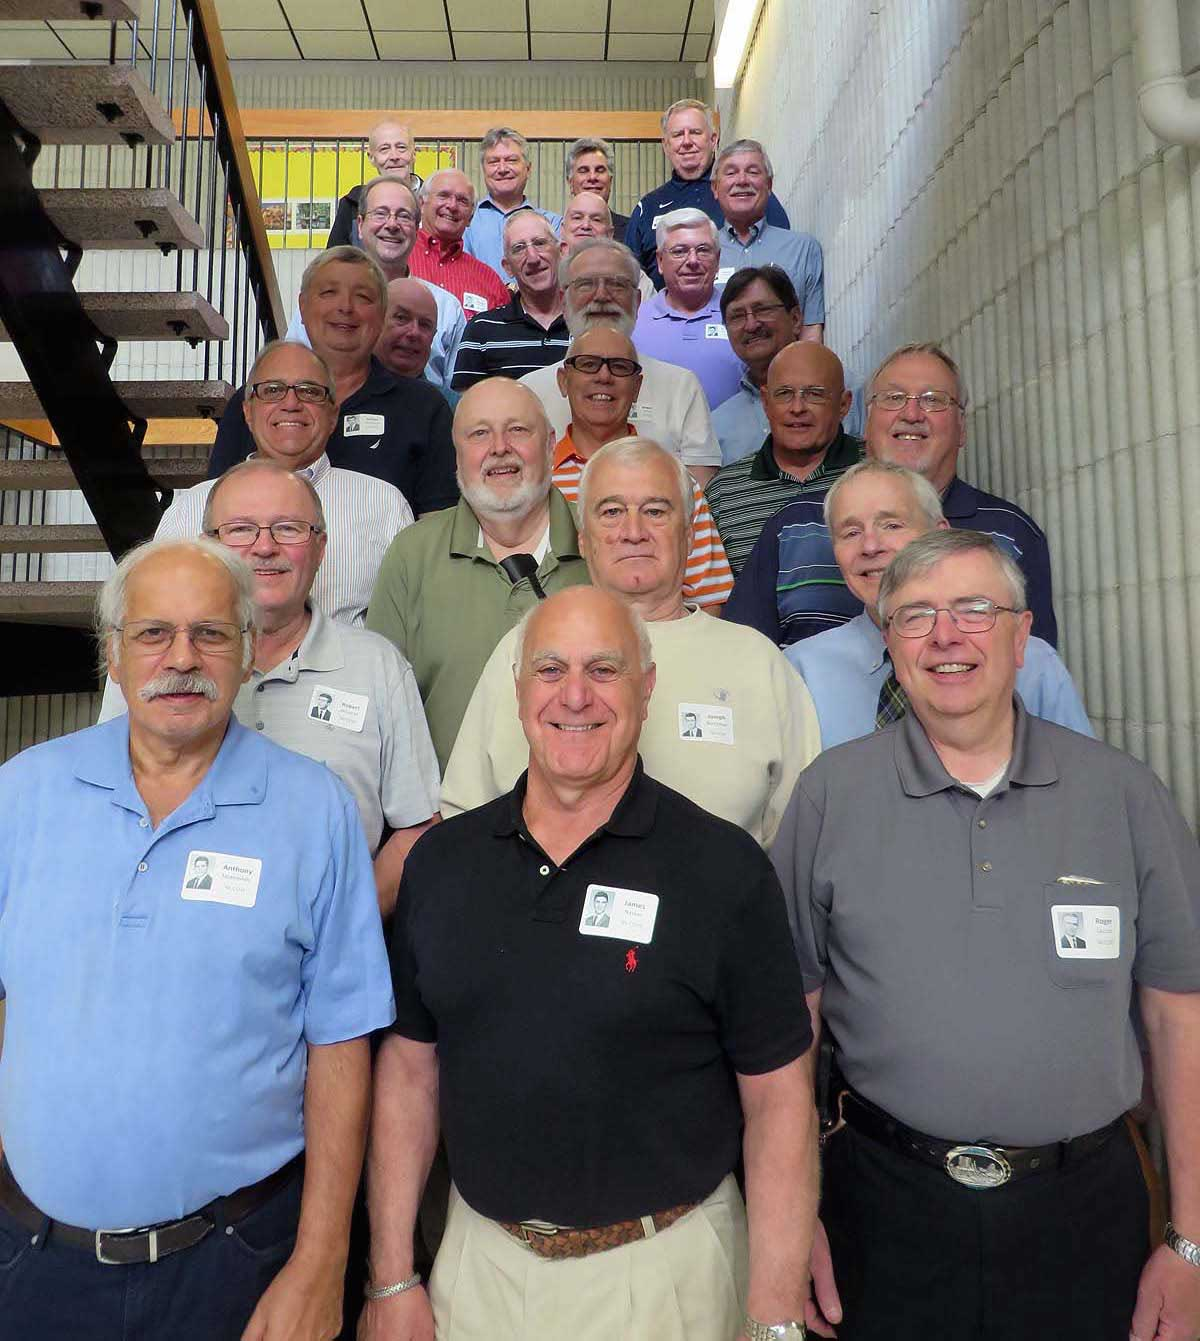 The Class of 1966 at Central Catholic